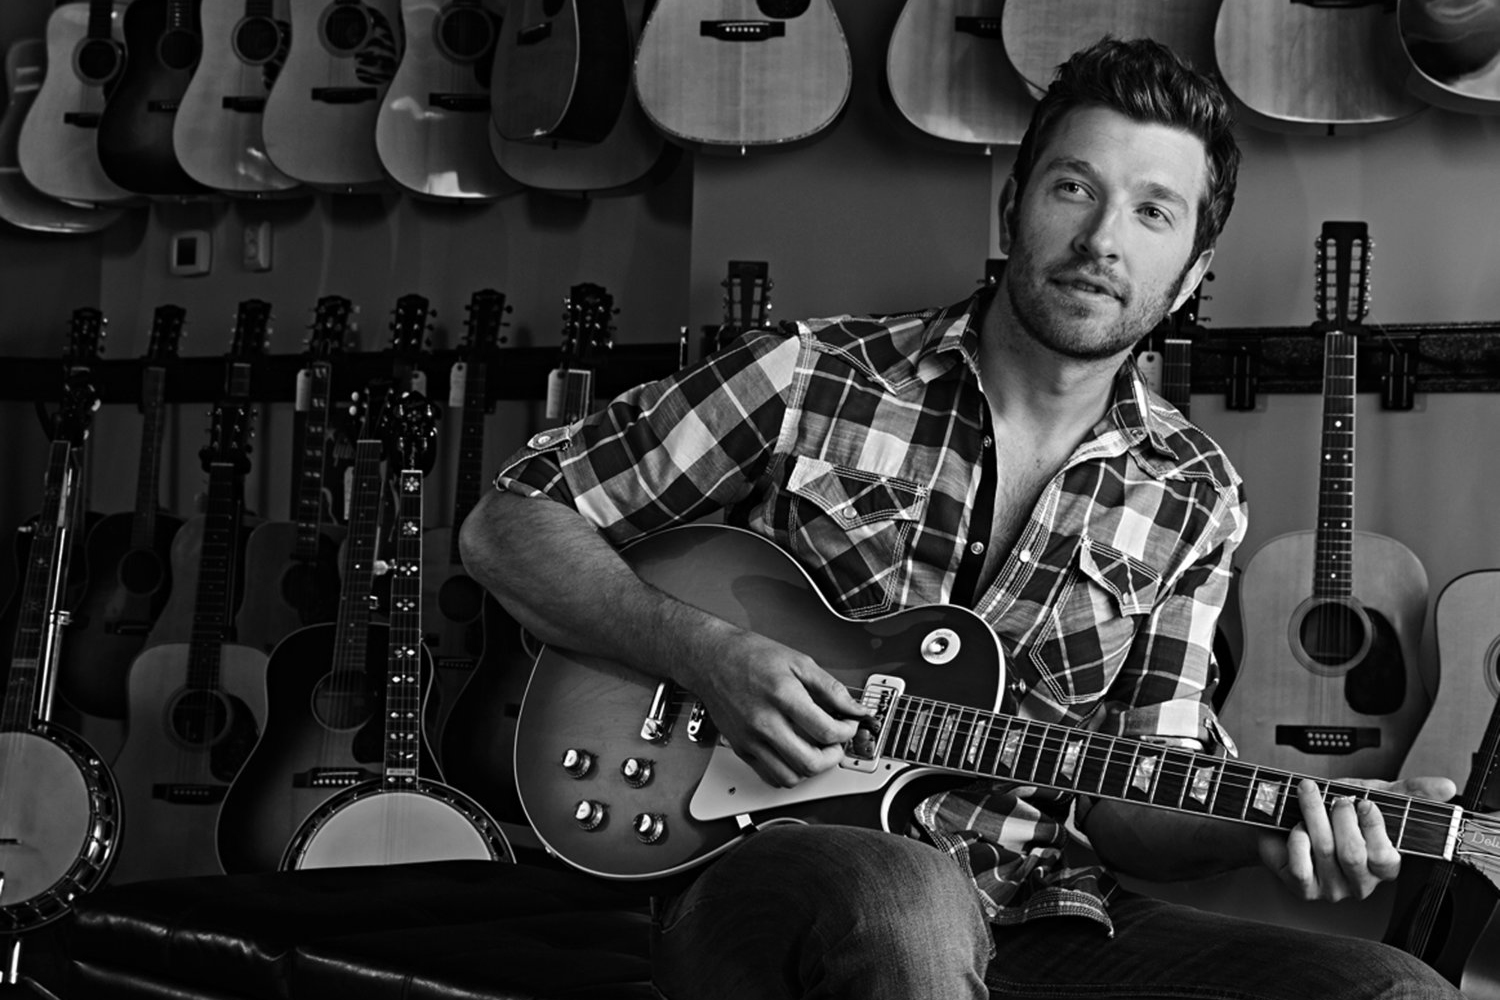 brett+guitar+shop+4bw.jpg